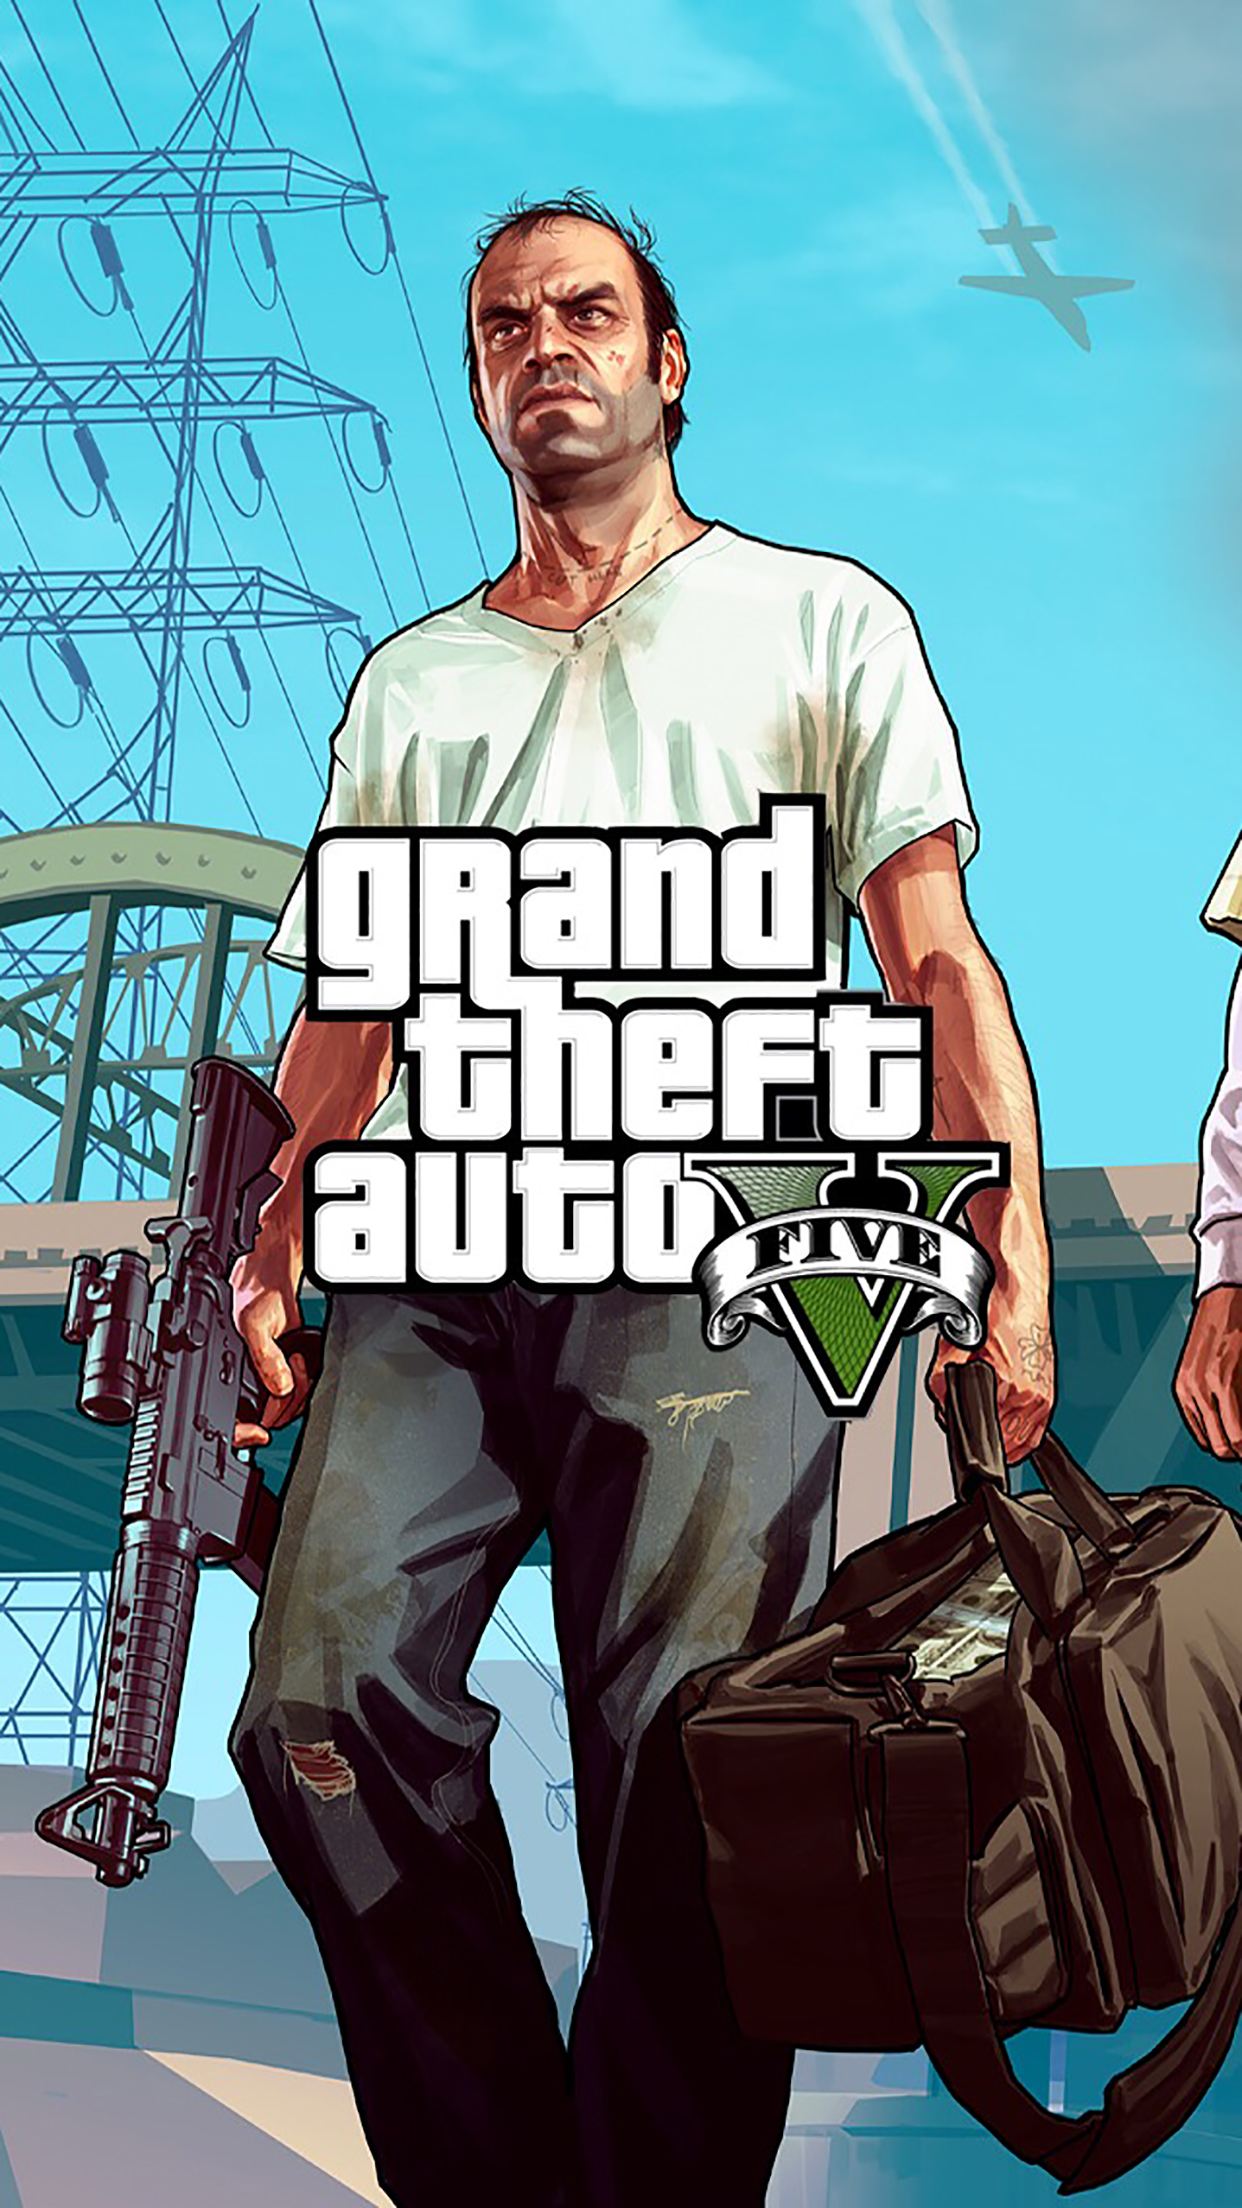 Grand Theft Auto 5 Poster 2 3Wallpapers iPhone Parallax Grand Theft Auto 5 : Poster 2